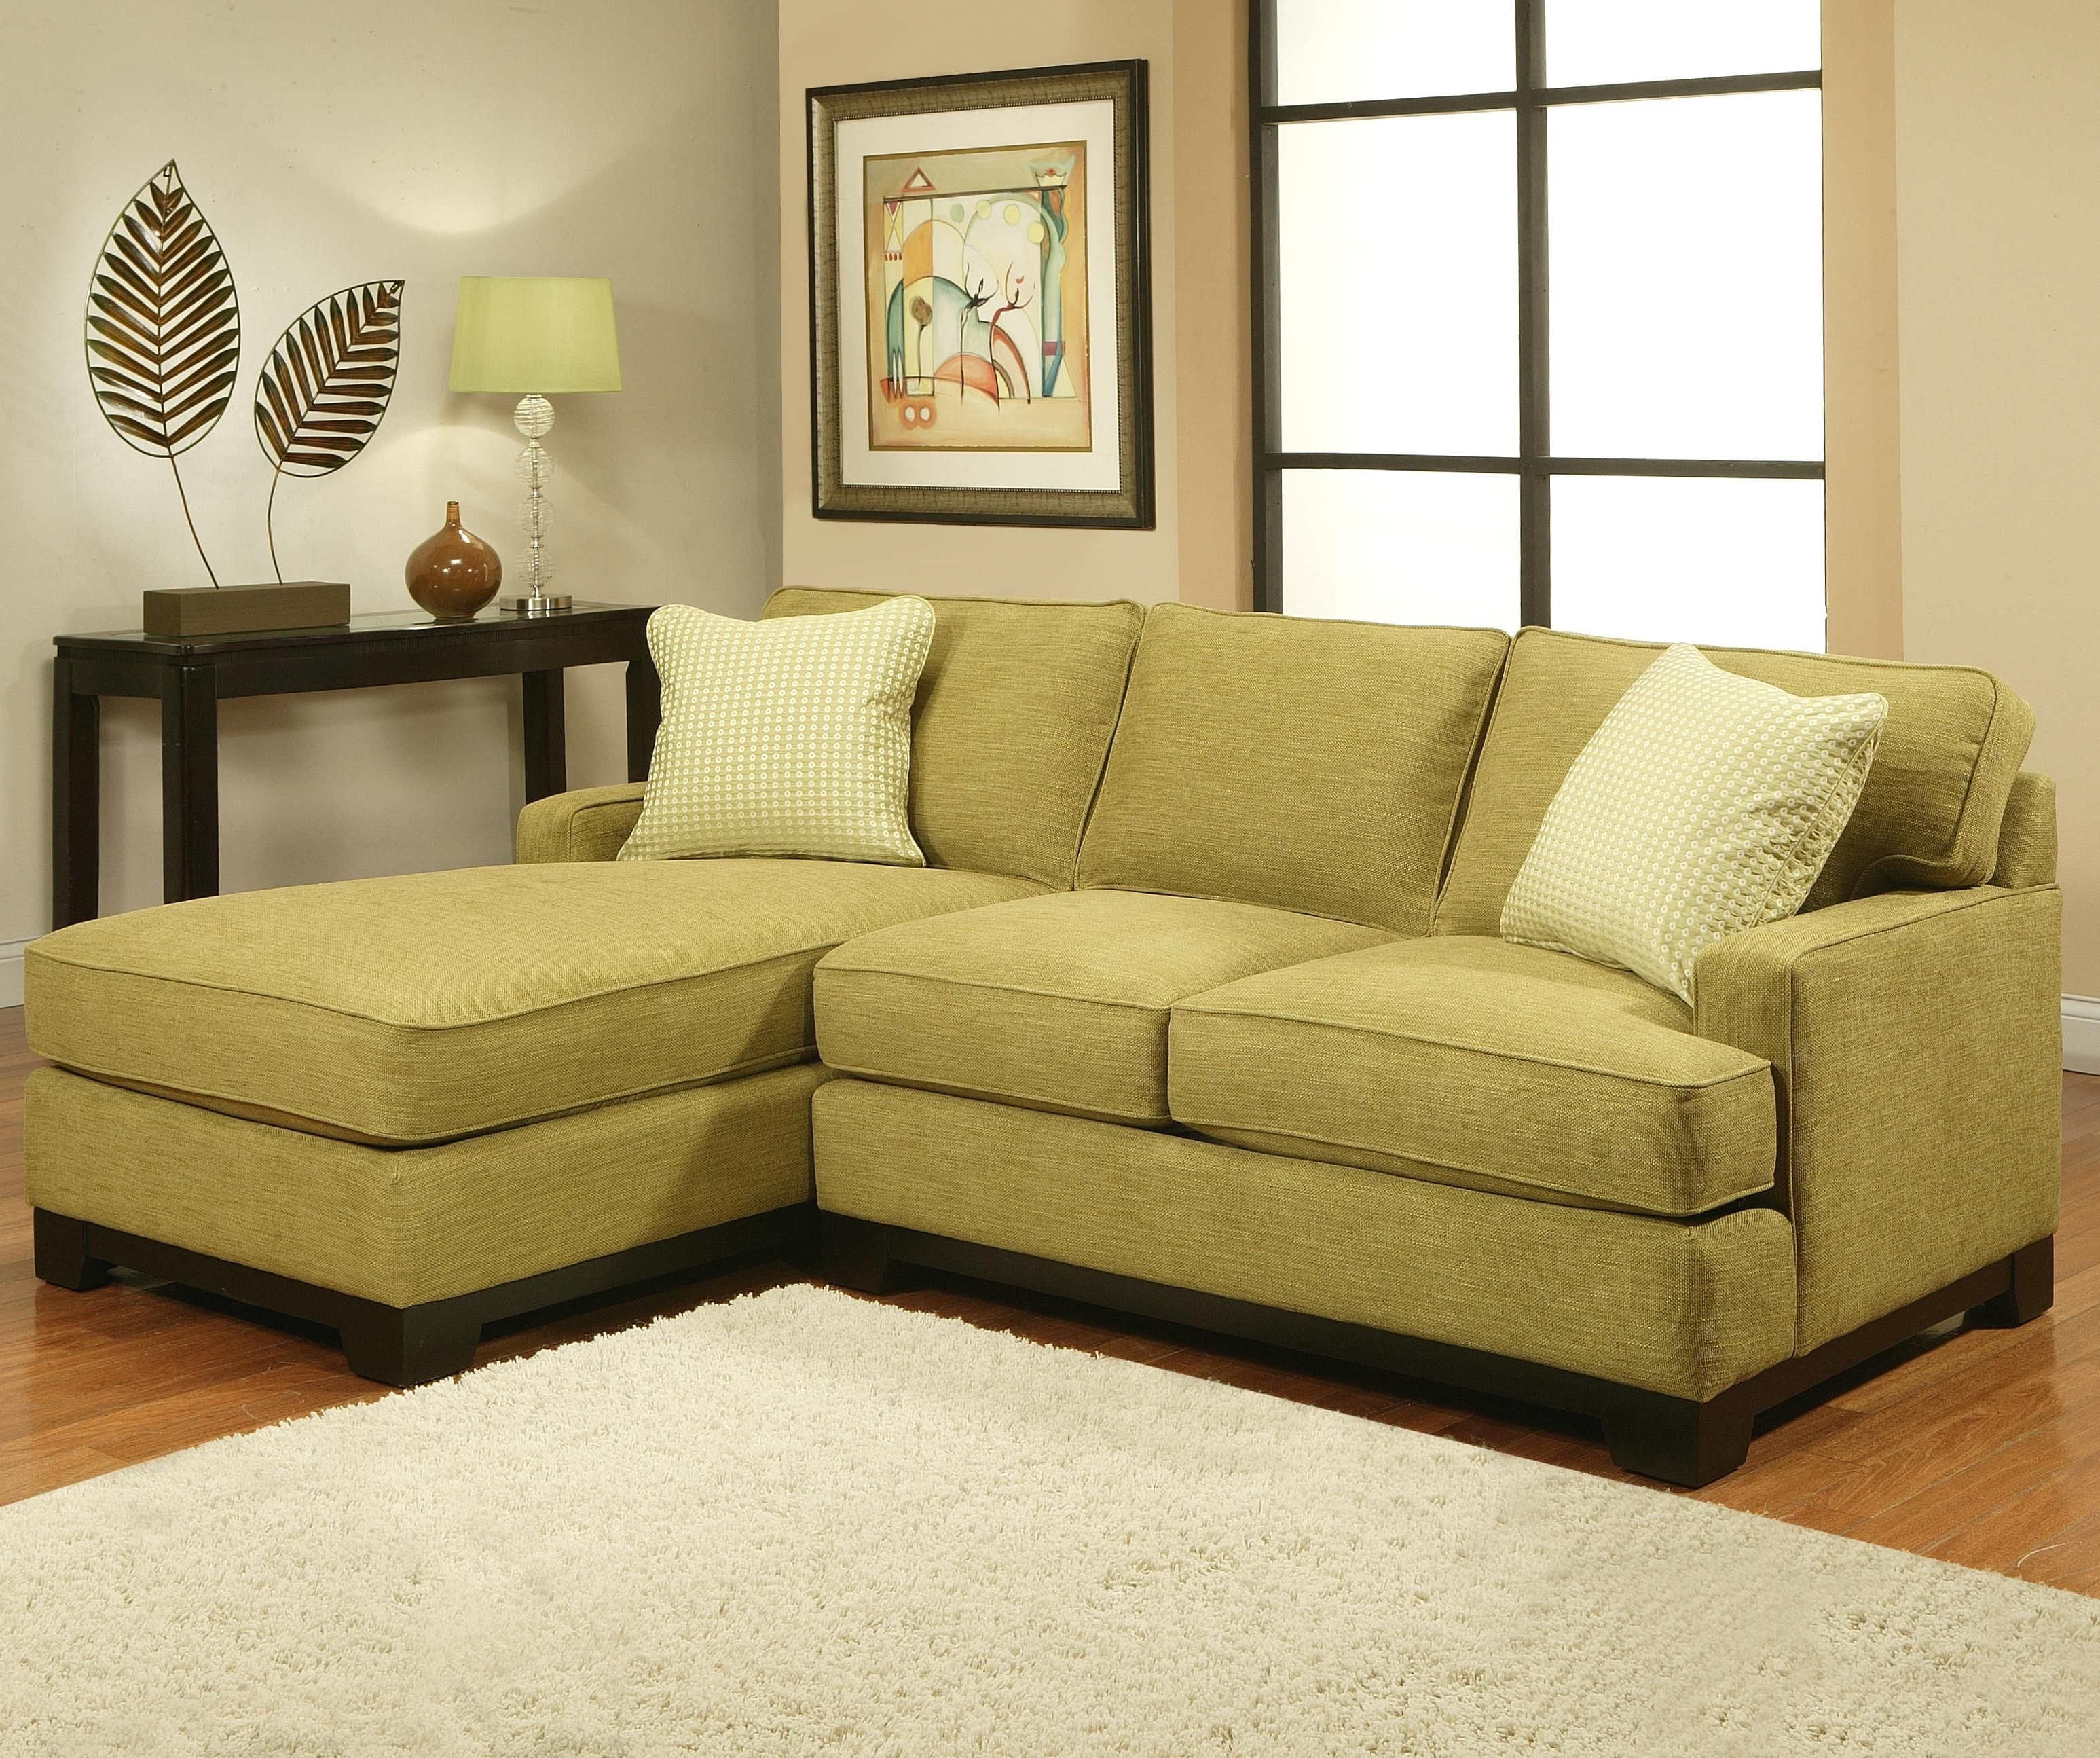 Nova Scotia Sectional Sofas Pertaining To Most Recently Released Choices – Kronos Contemporary Sectional Sofa With Track Arms (View 11 of 15)